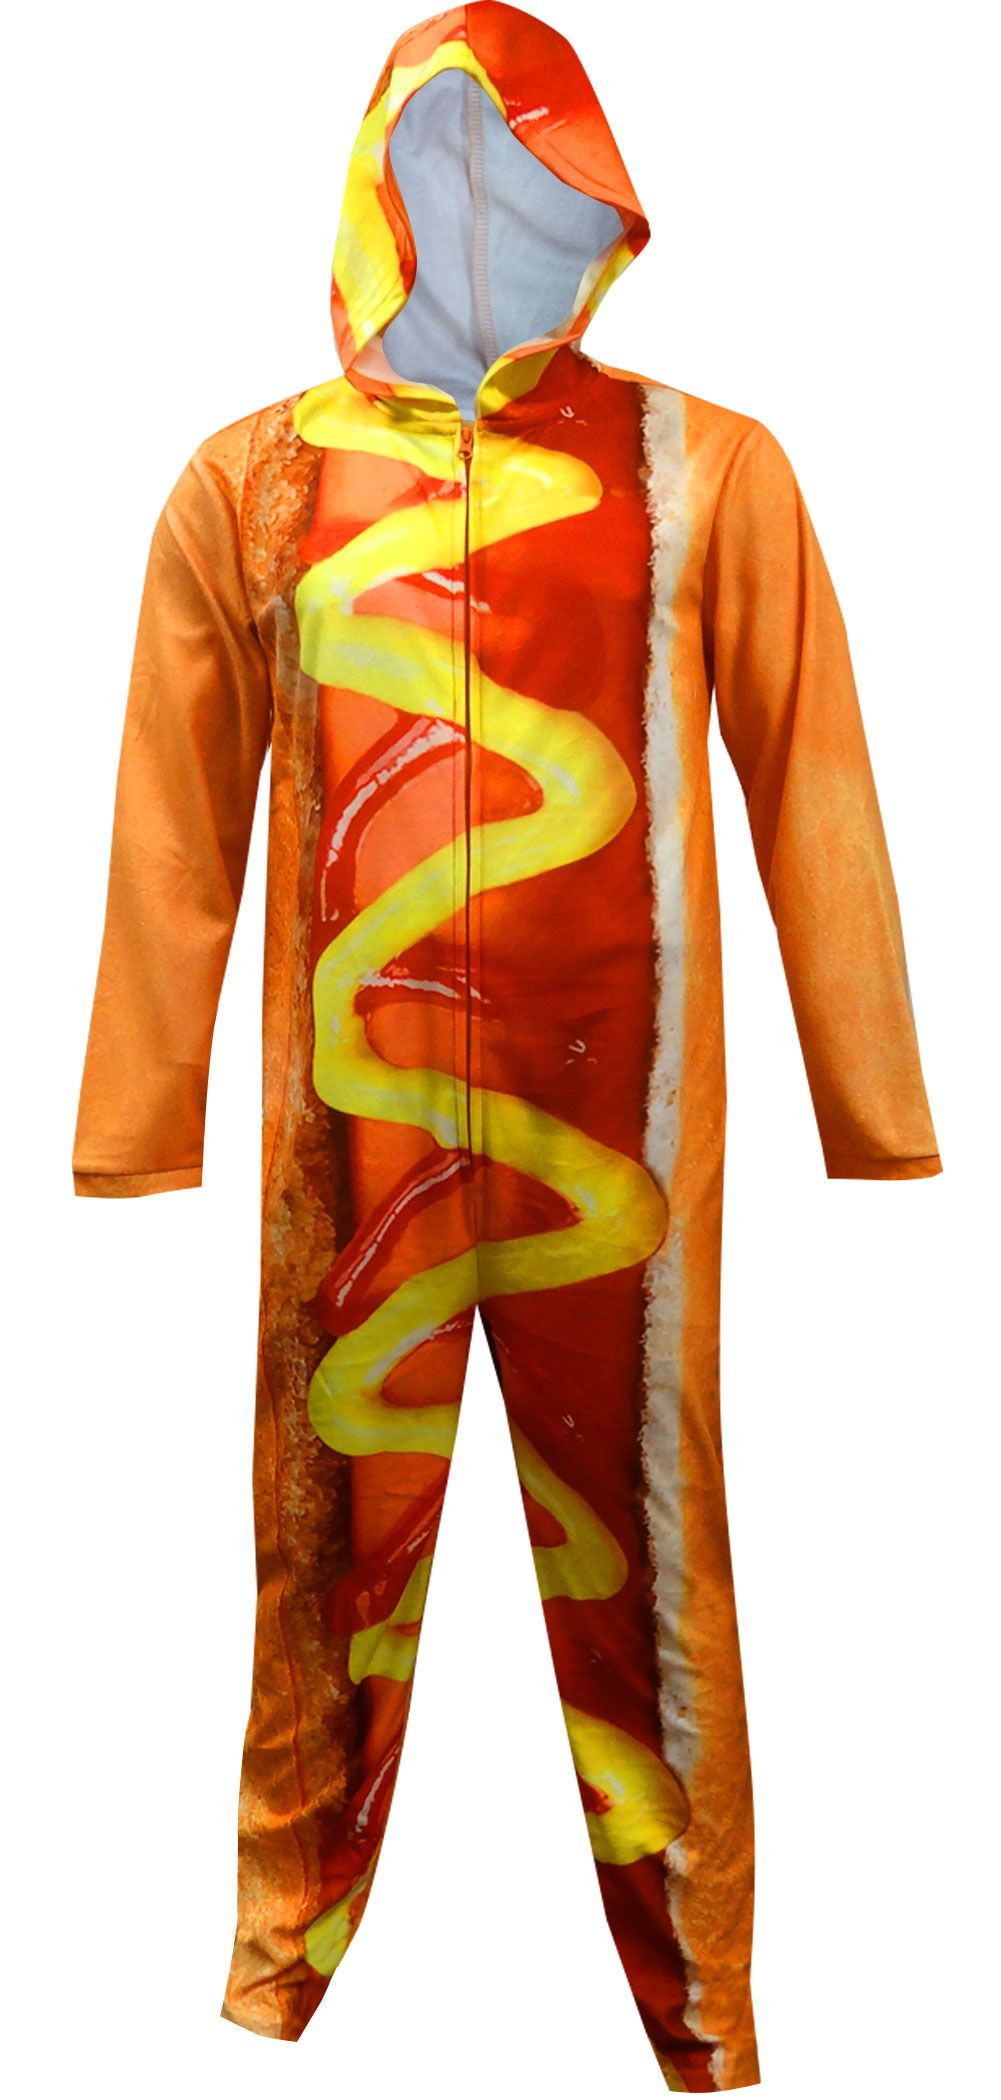 WebUndies.com Unisex Hot Dog Hooded Onesie Pajama  2f984241a